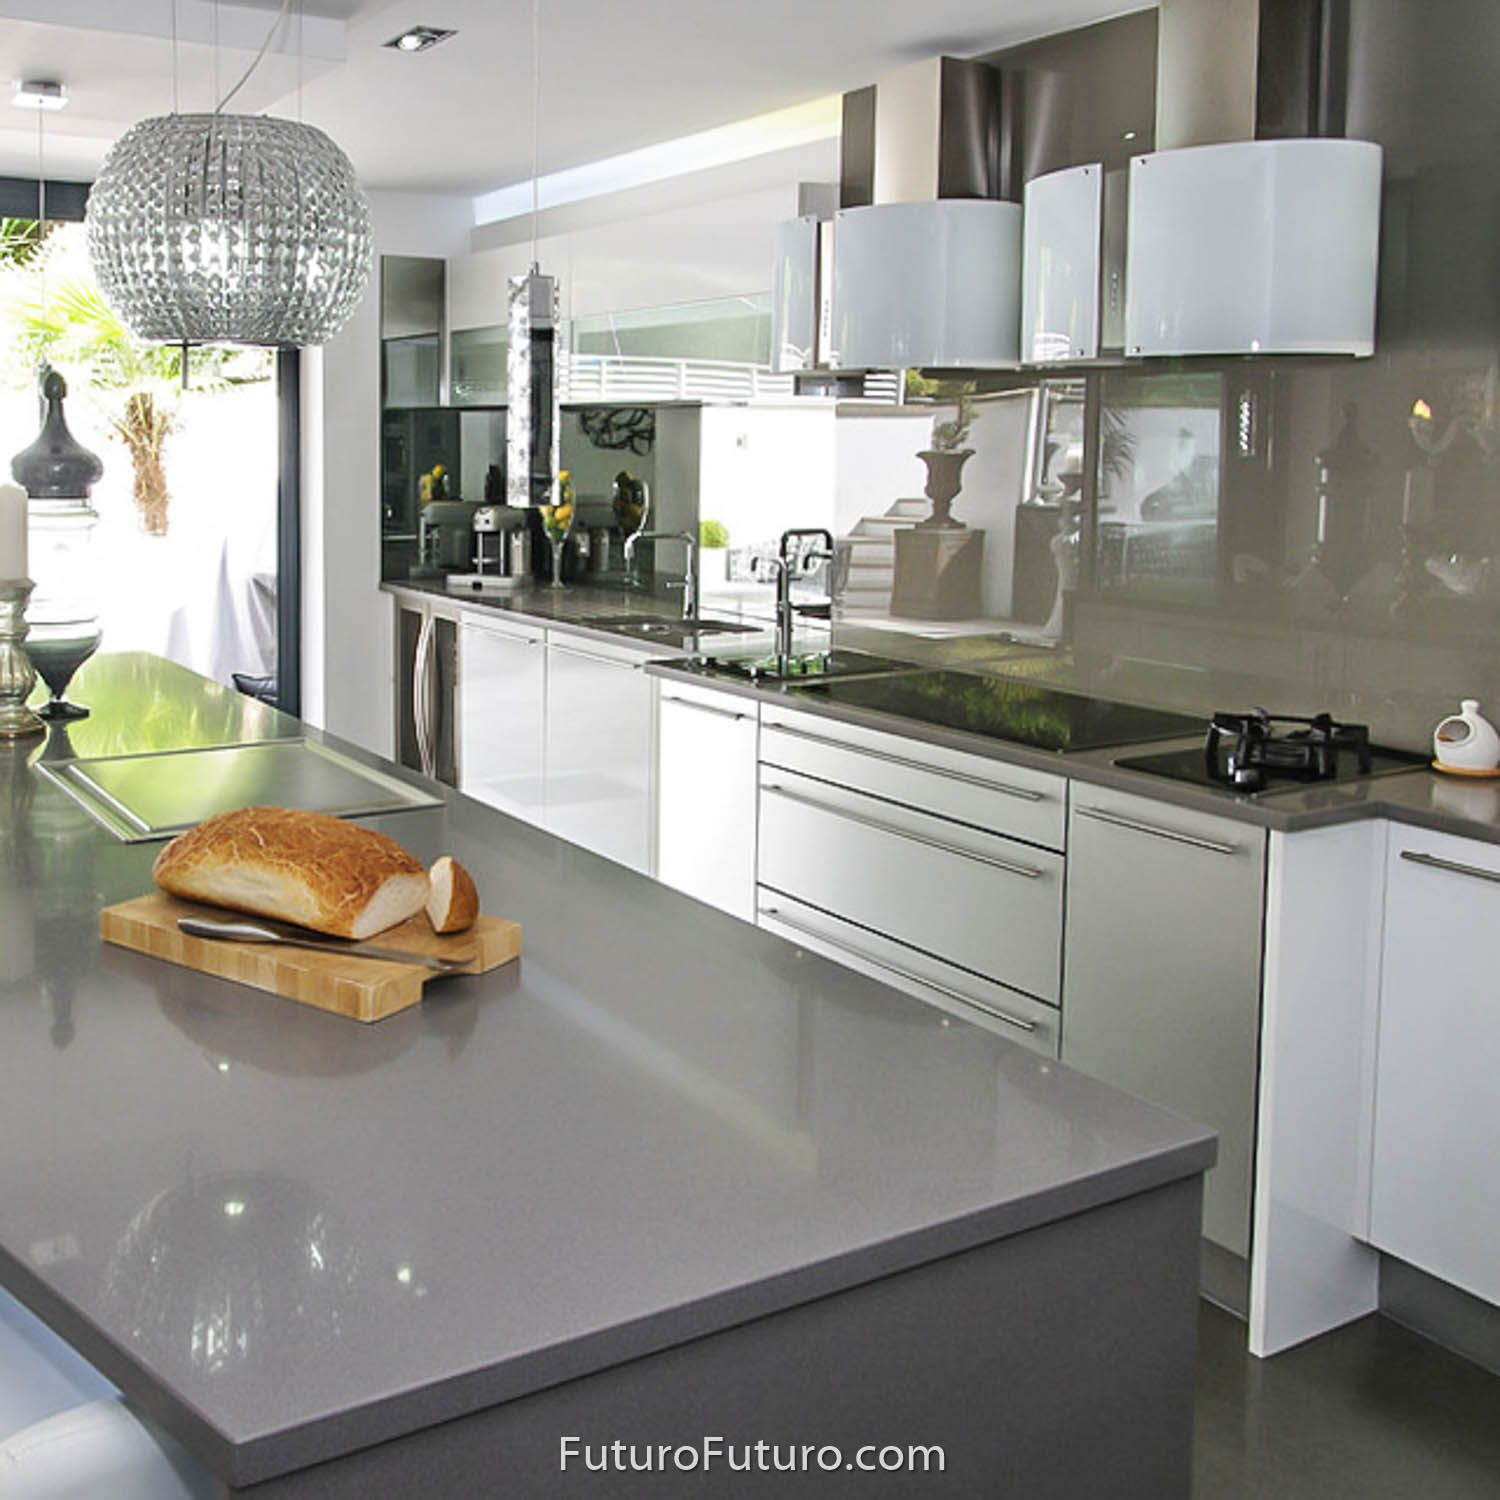 27 Murano Glow Led Wall A Kitchen Appliance Or A Work Of Art